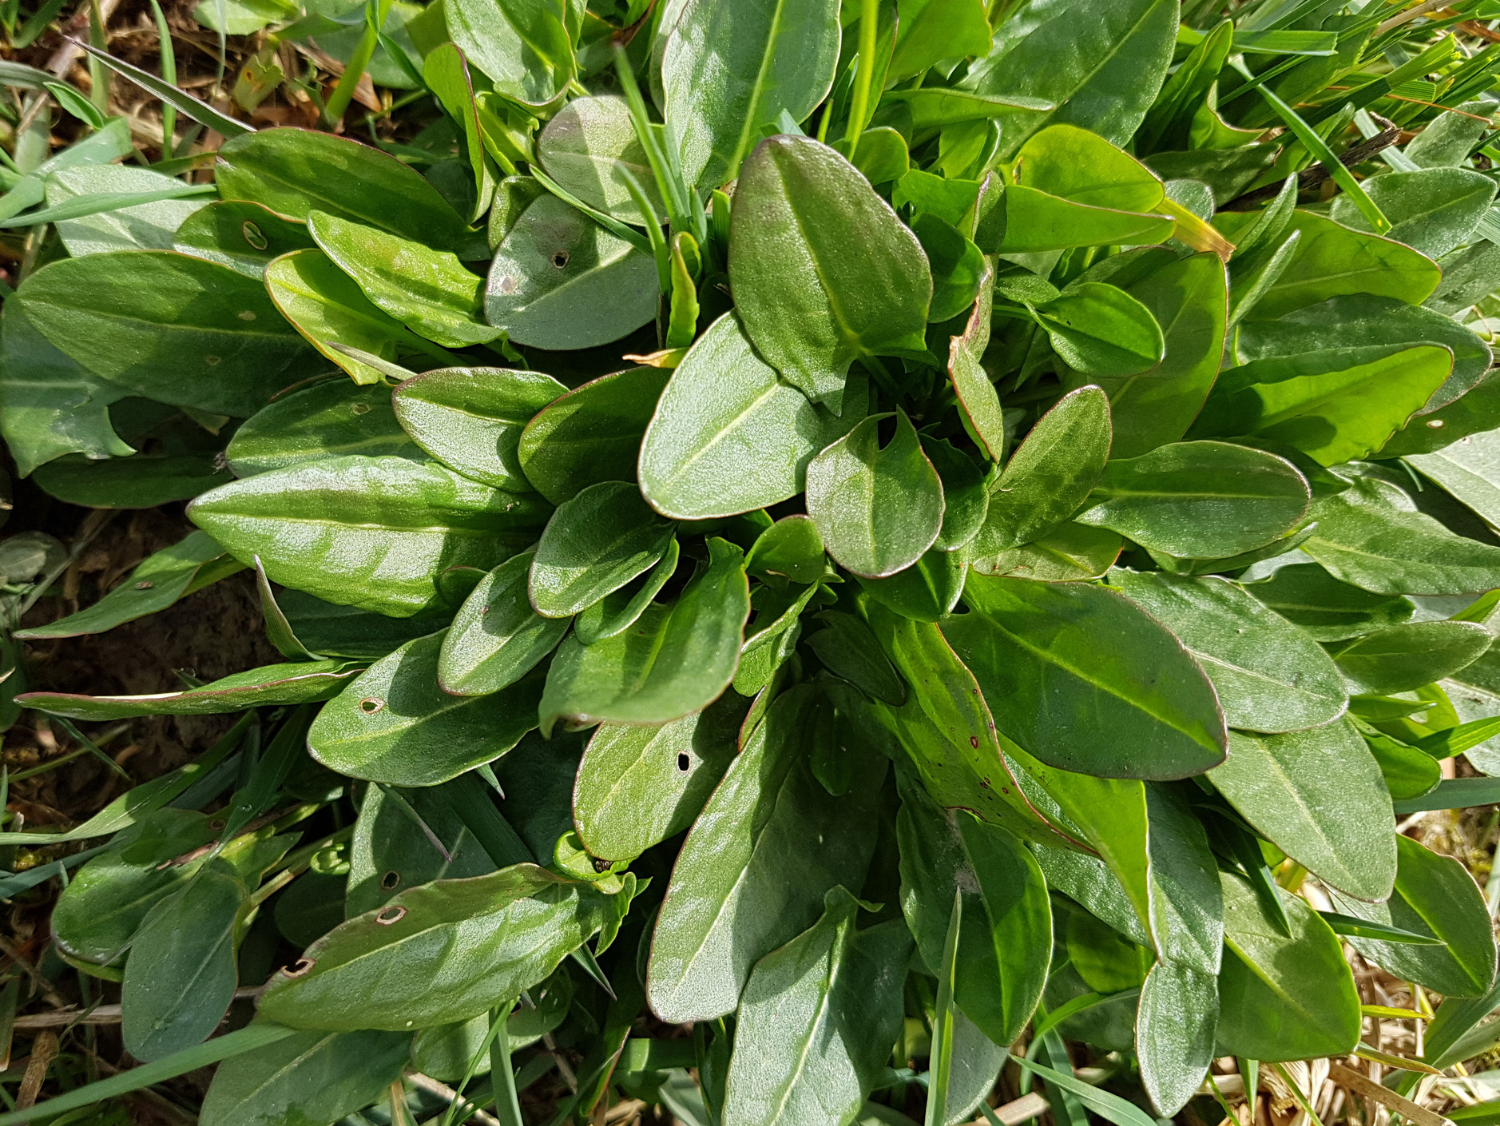 Sorrel - A Foraging Guide to Its Food, Medicine and Other Uses - Rumex acetosa